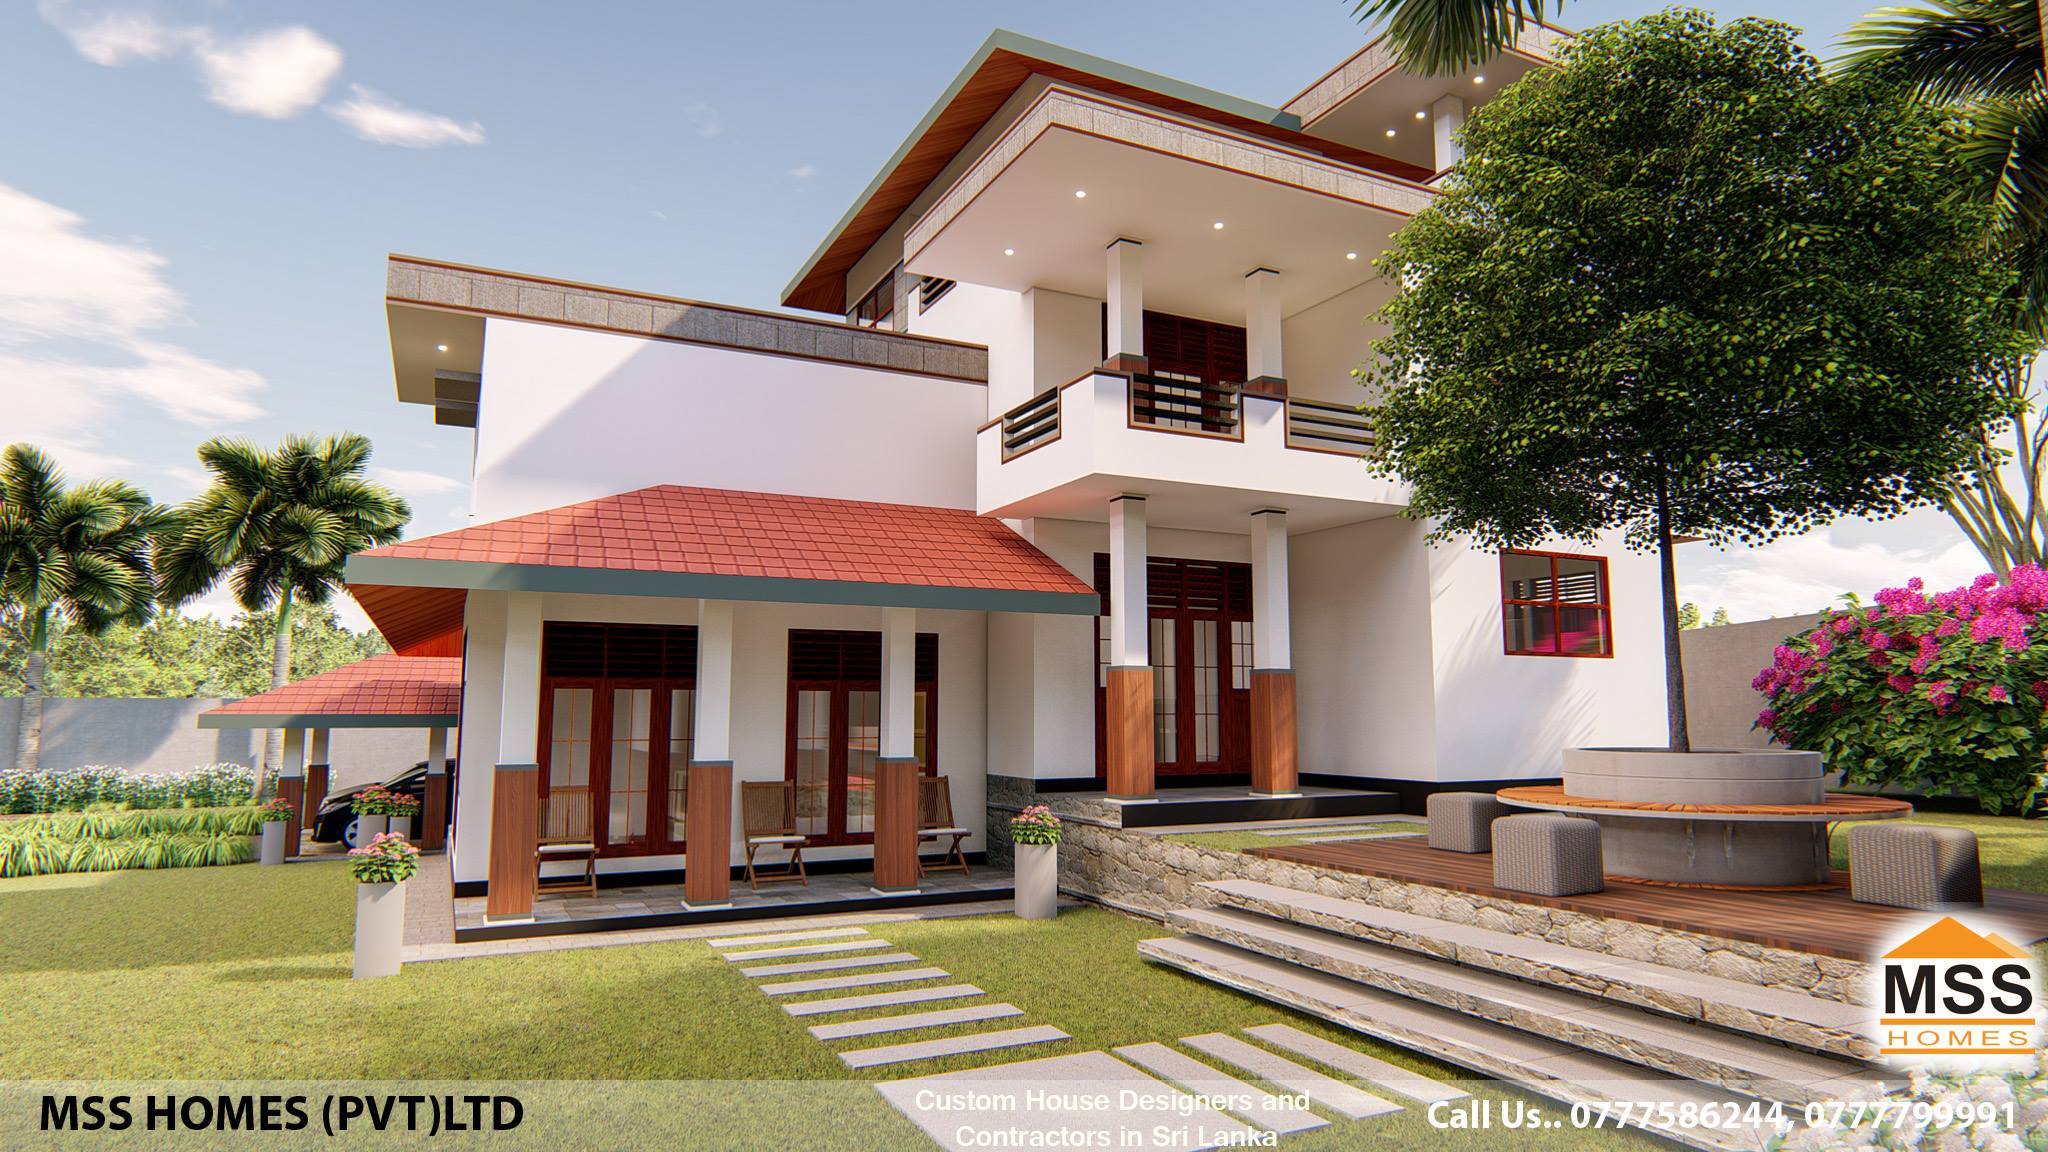 House Design Md523 House Builders In Sri Lanka Home